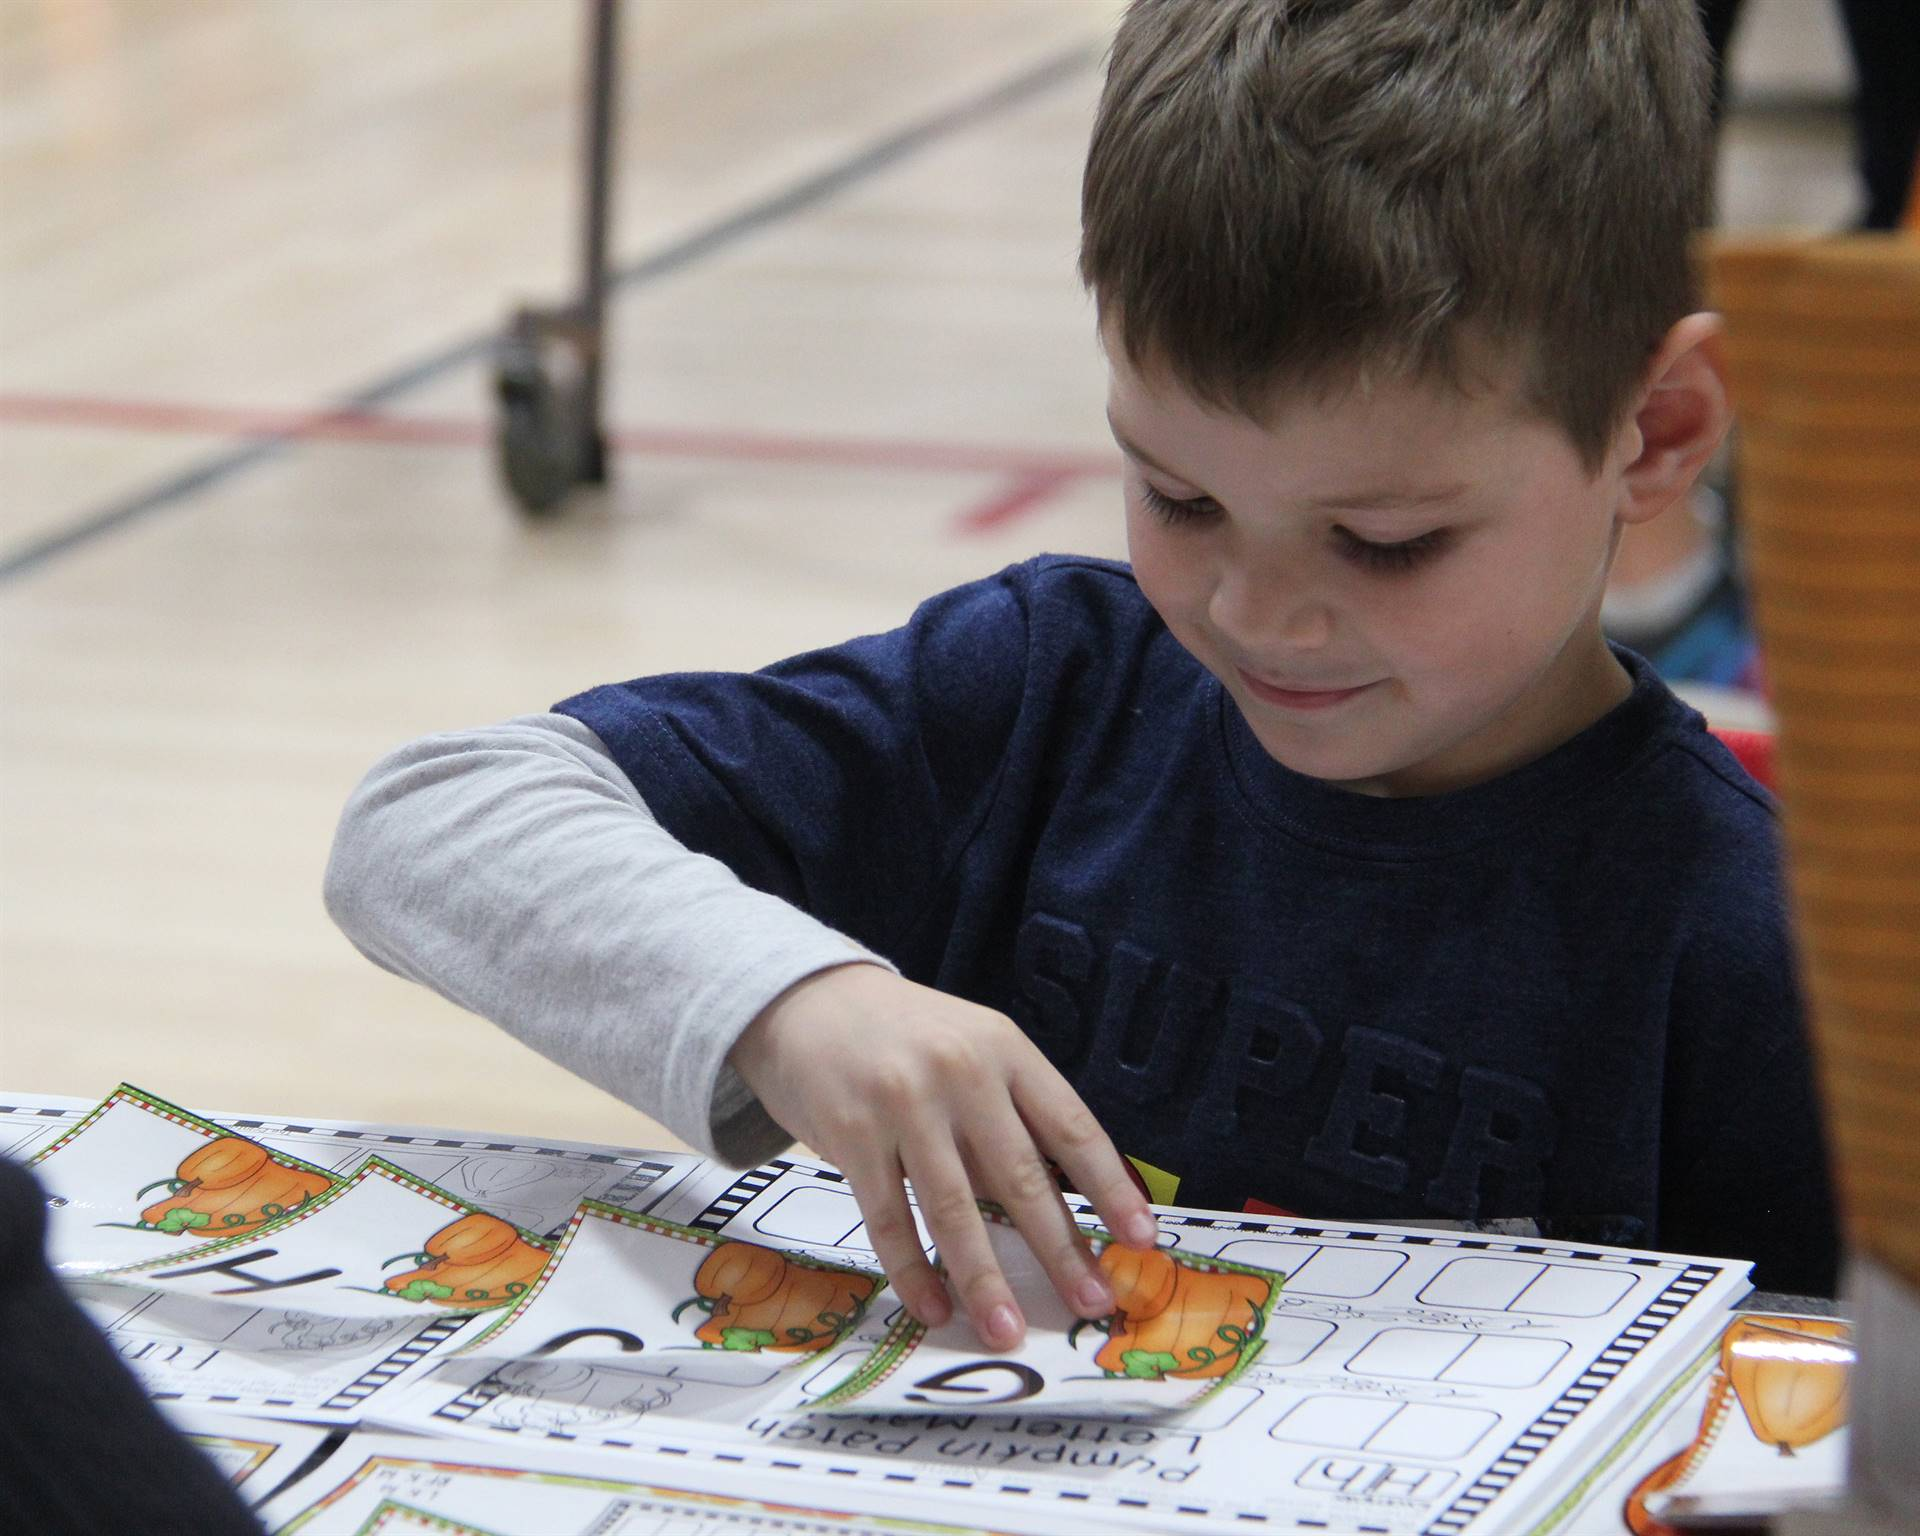 student taking part in learning activity